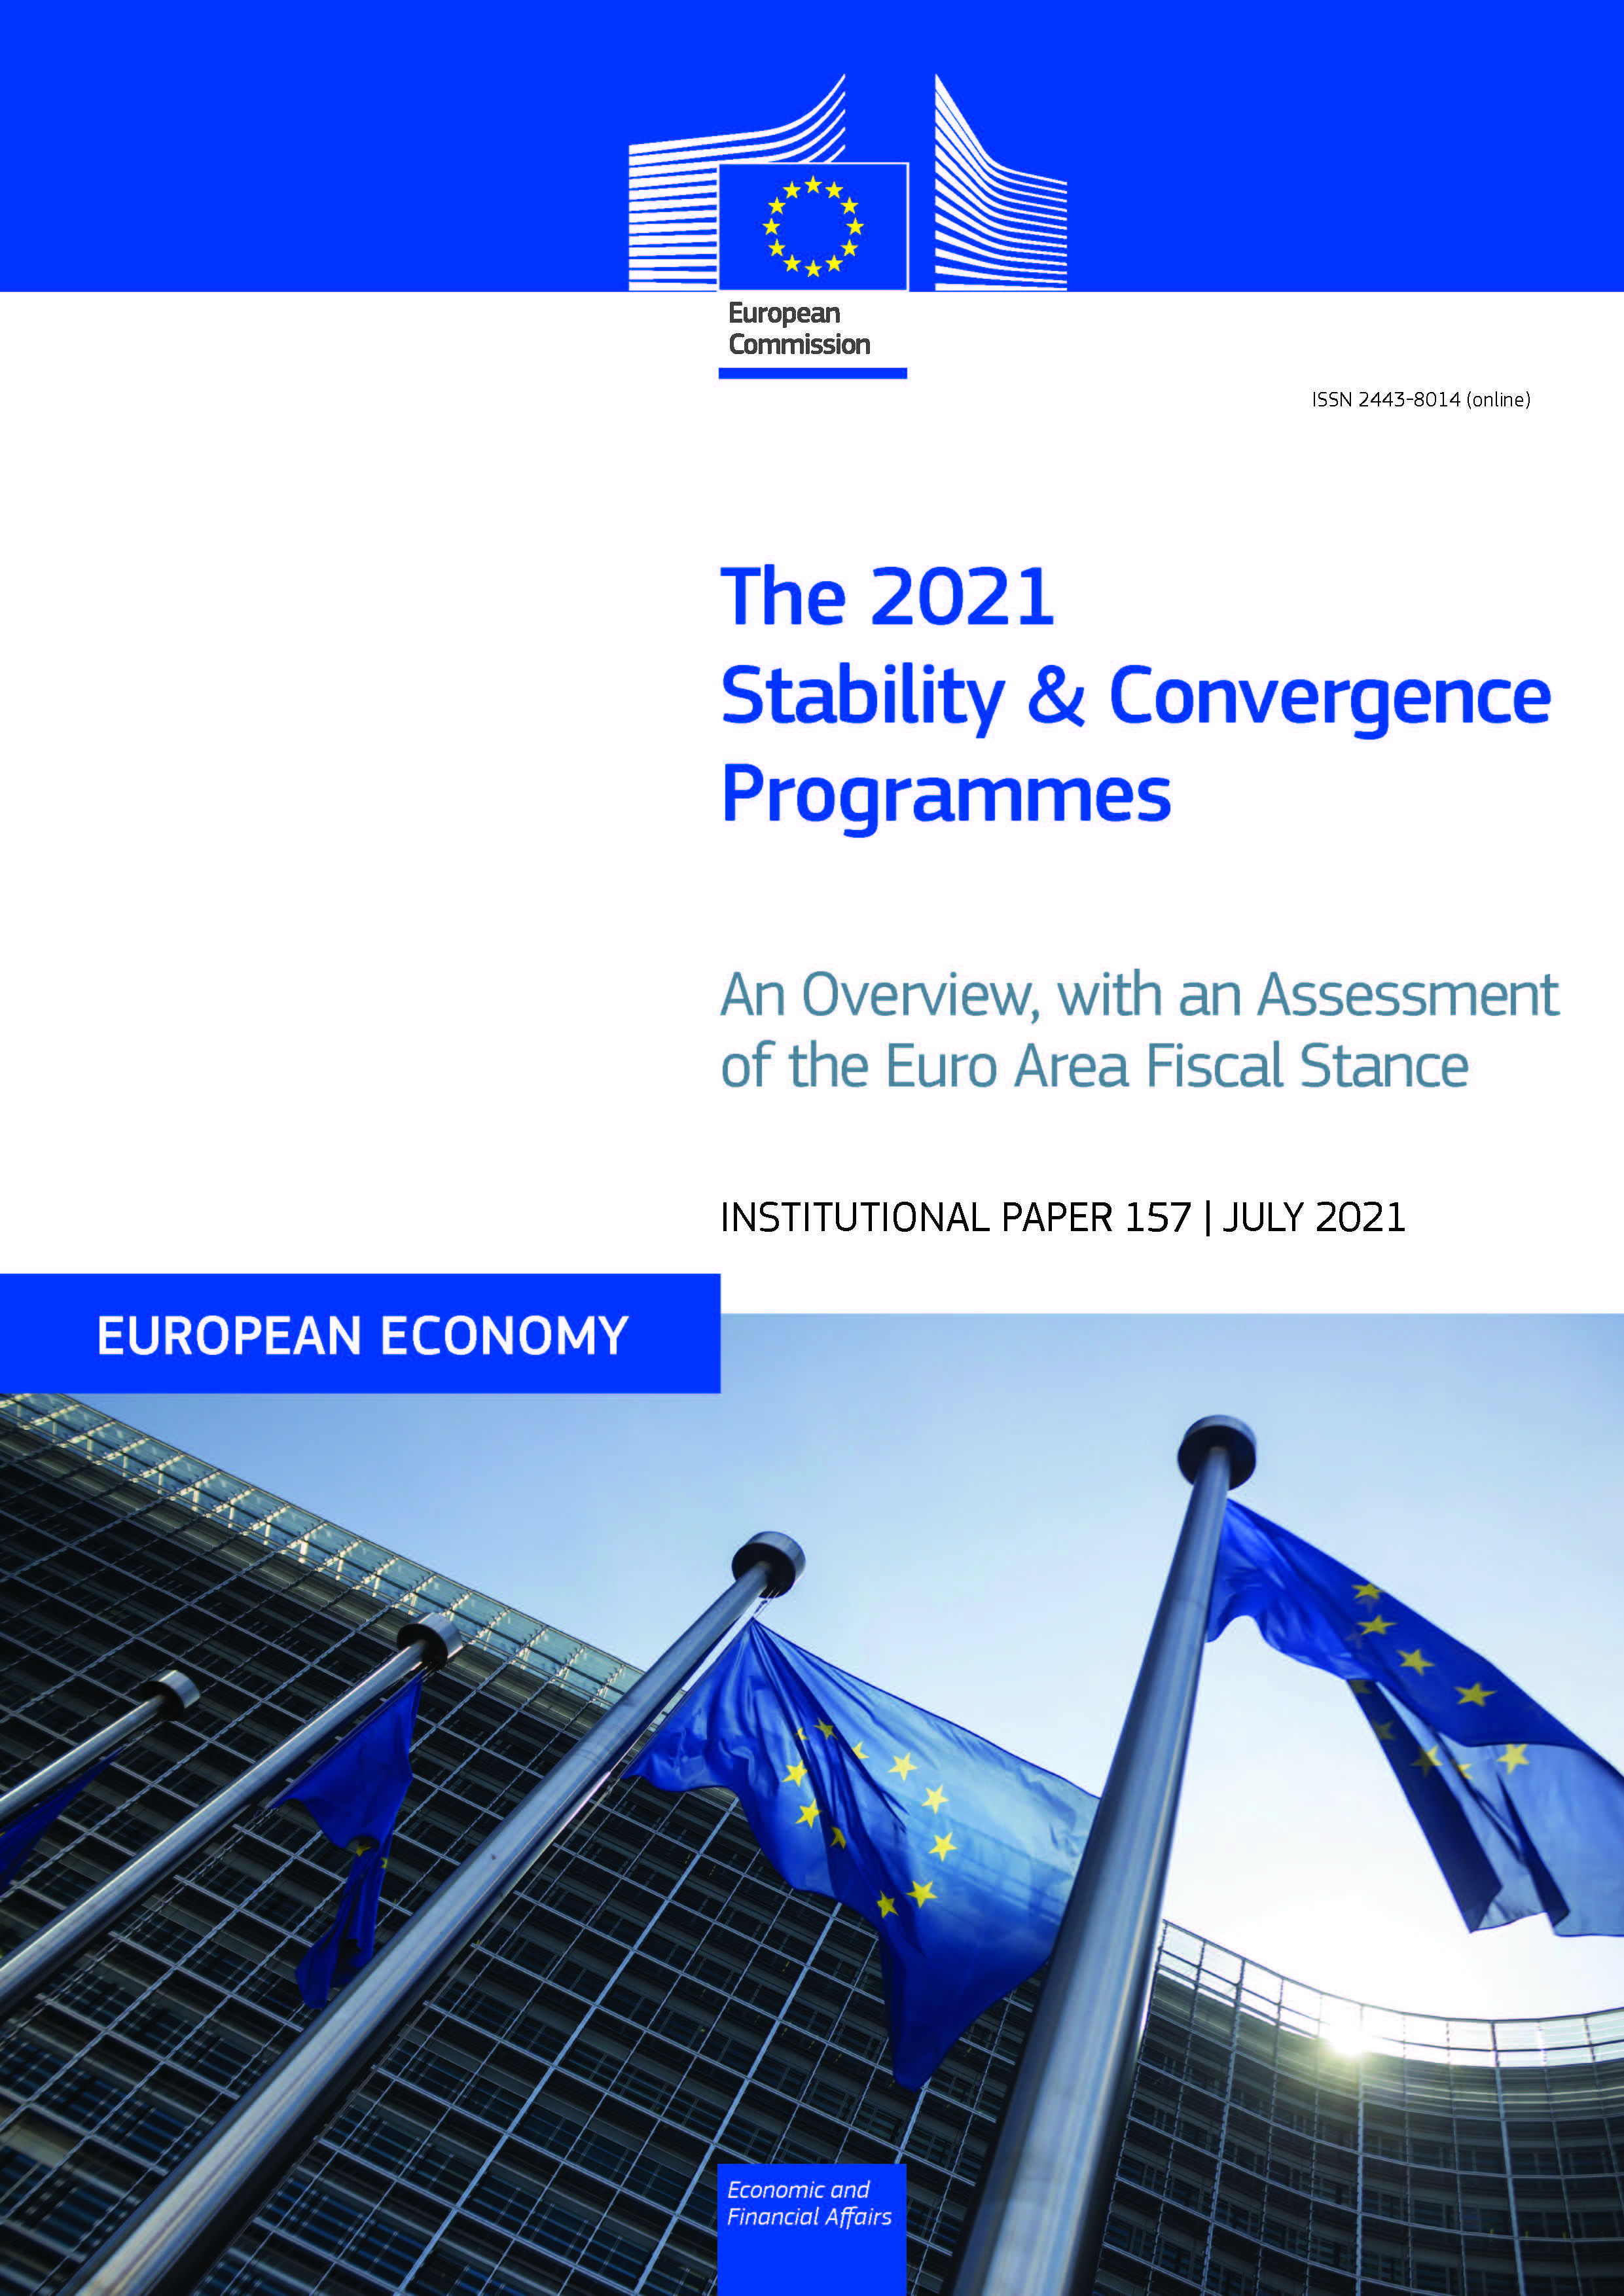 The 2021 Stability & Convergence Programmes: An Overview, with an Assessment of the Euro Area Fiscal Stance